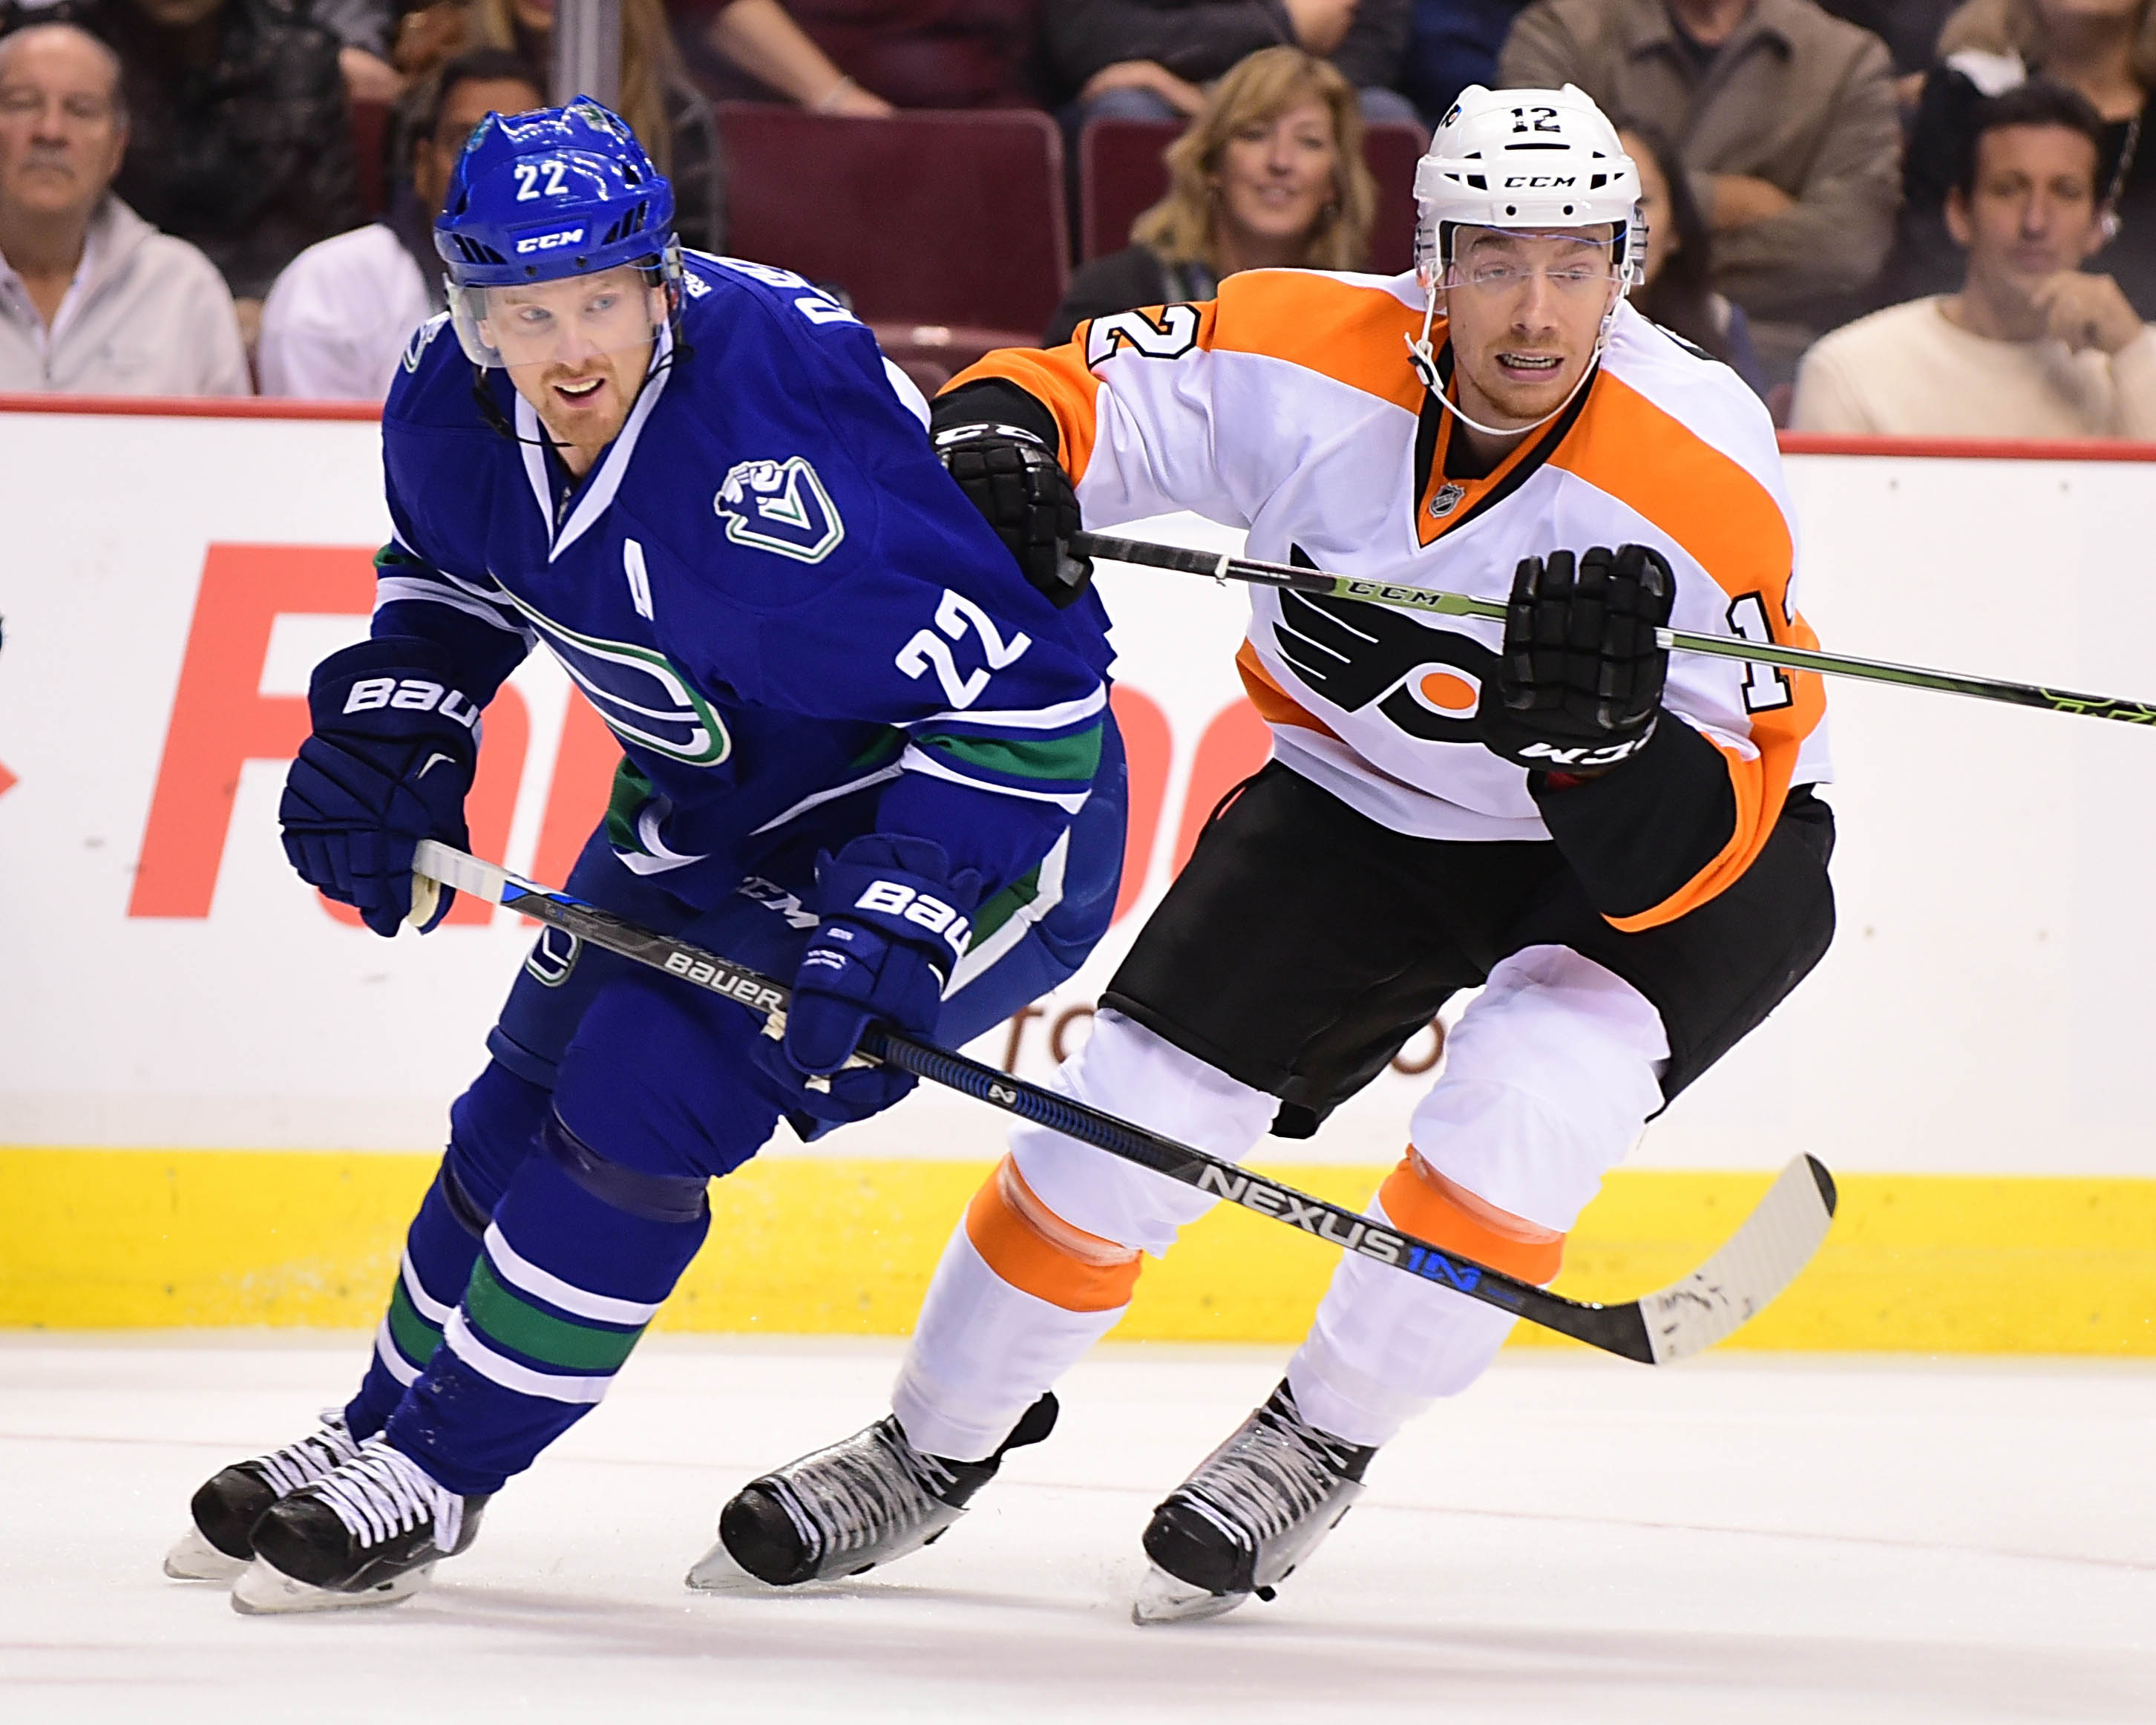 8900370-nhl-philadelphia-flyers-at-vancouver-canucks